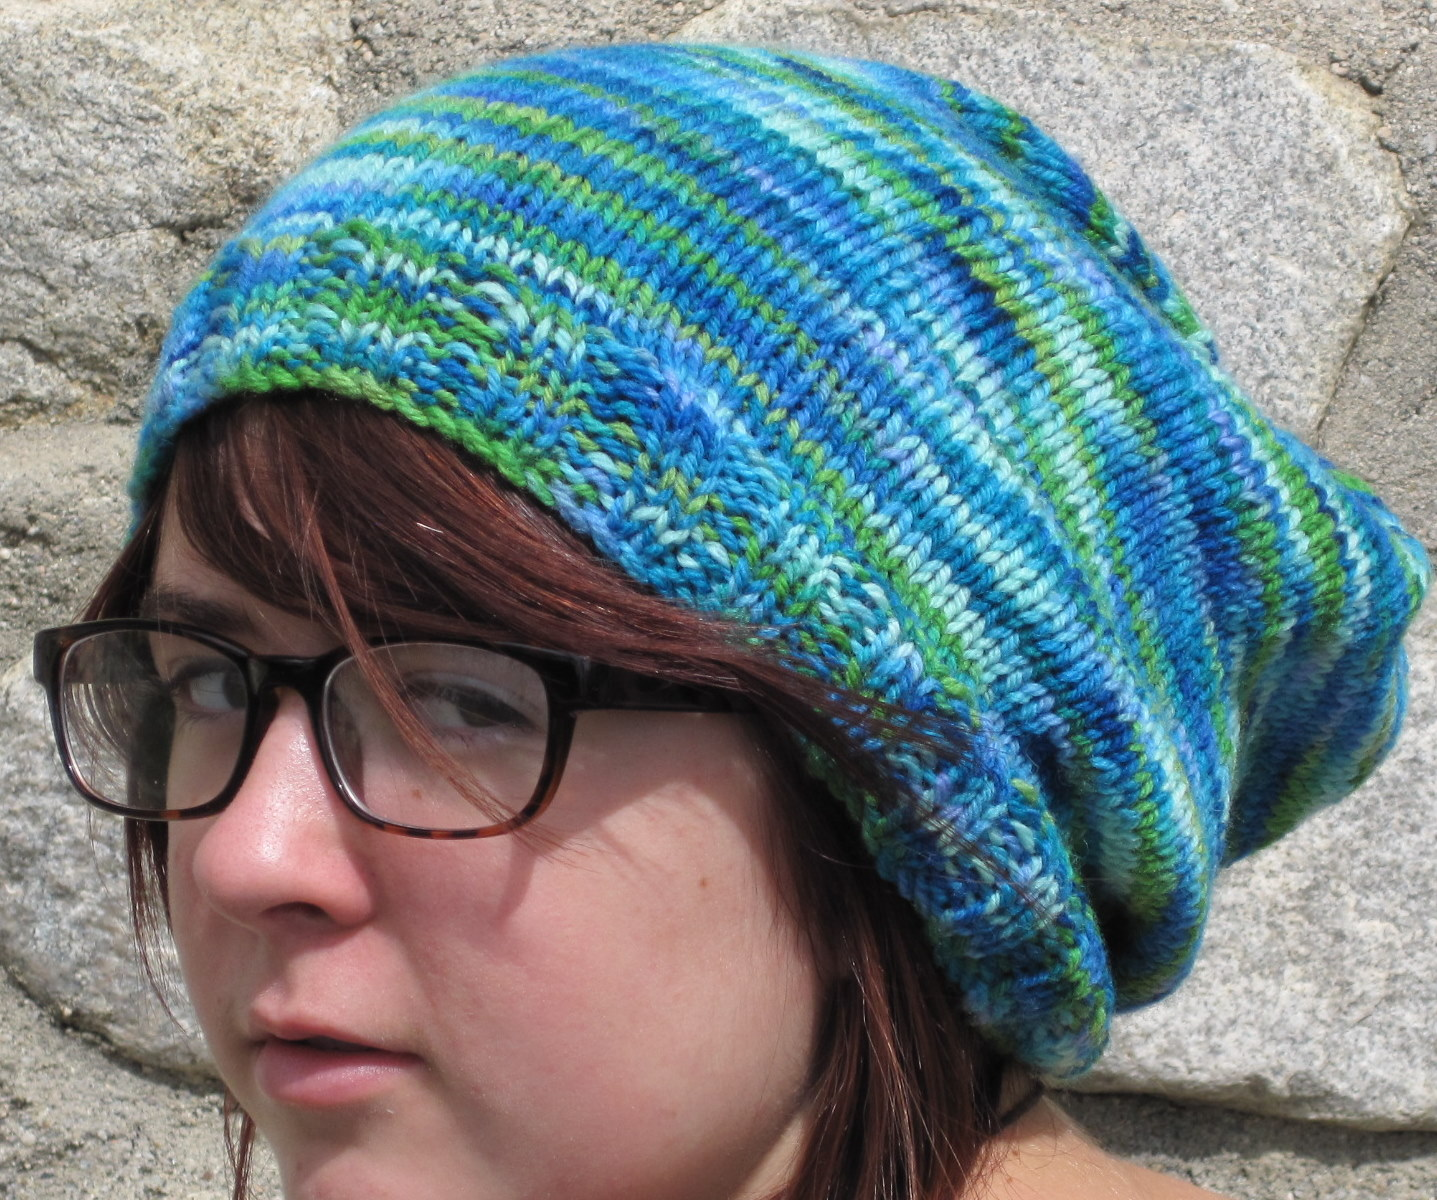 Just a Stitch Away: My Favorite Free Patterns: Hats to Knit & Crochet